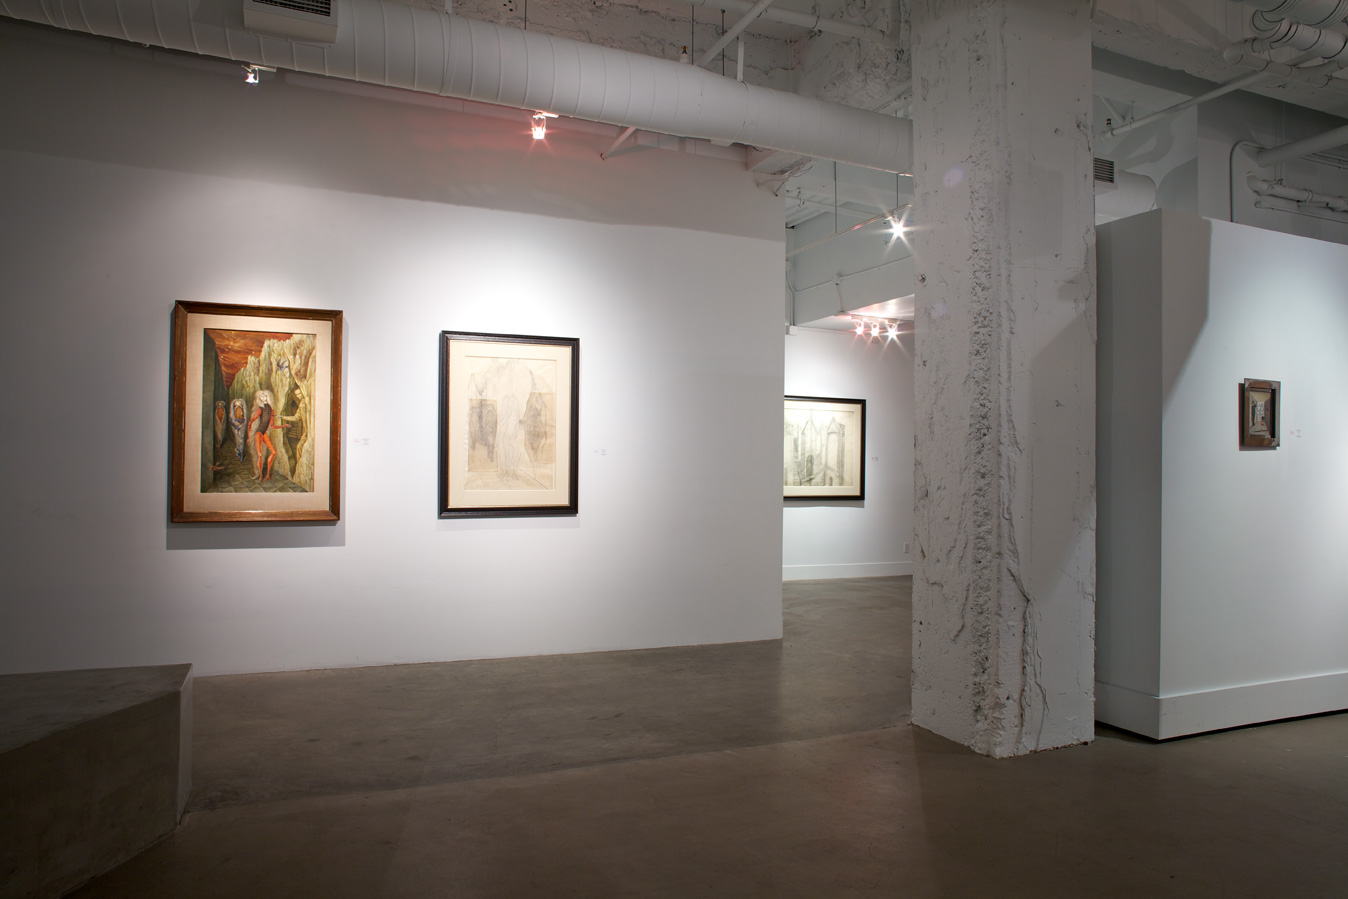 Remedios Varo: Indelible Fables,  installation view, Gallery Wendi Norris, San Francisco, CA, January 7 – February 26, 2012